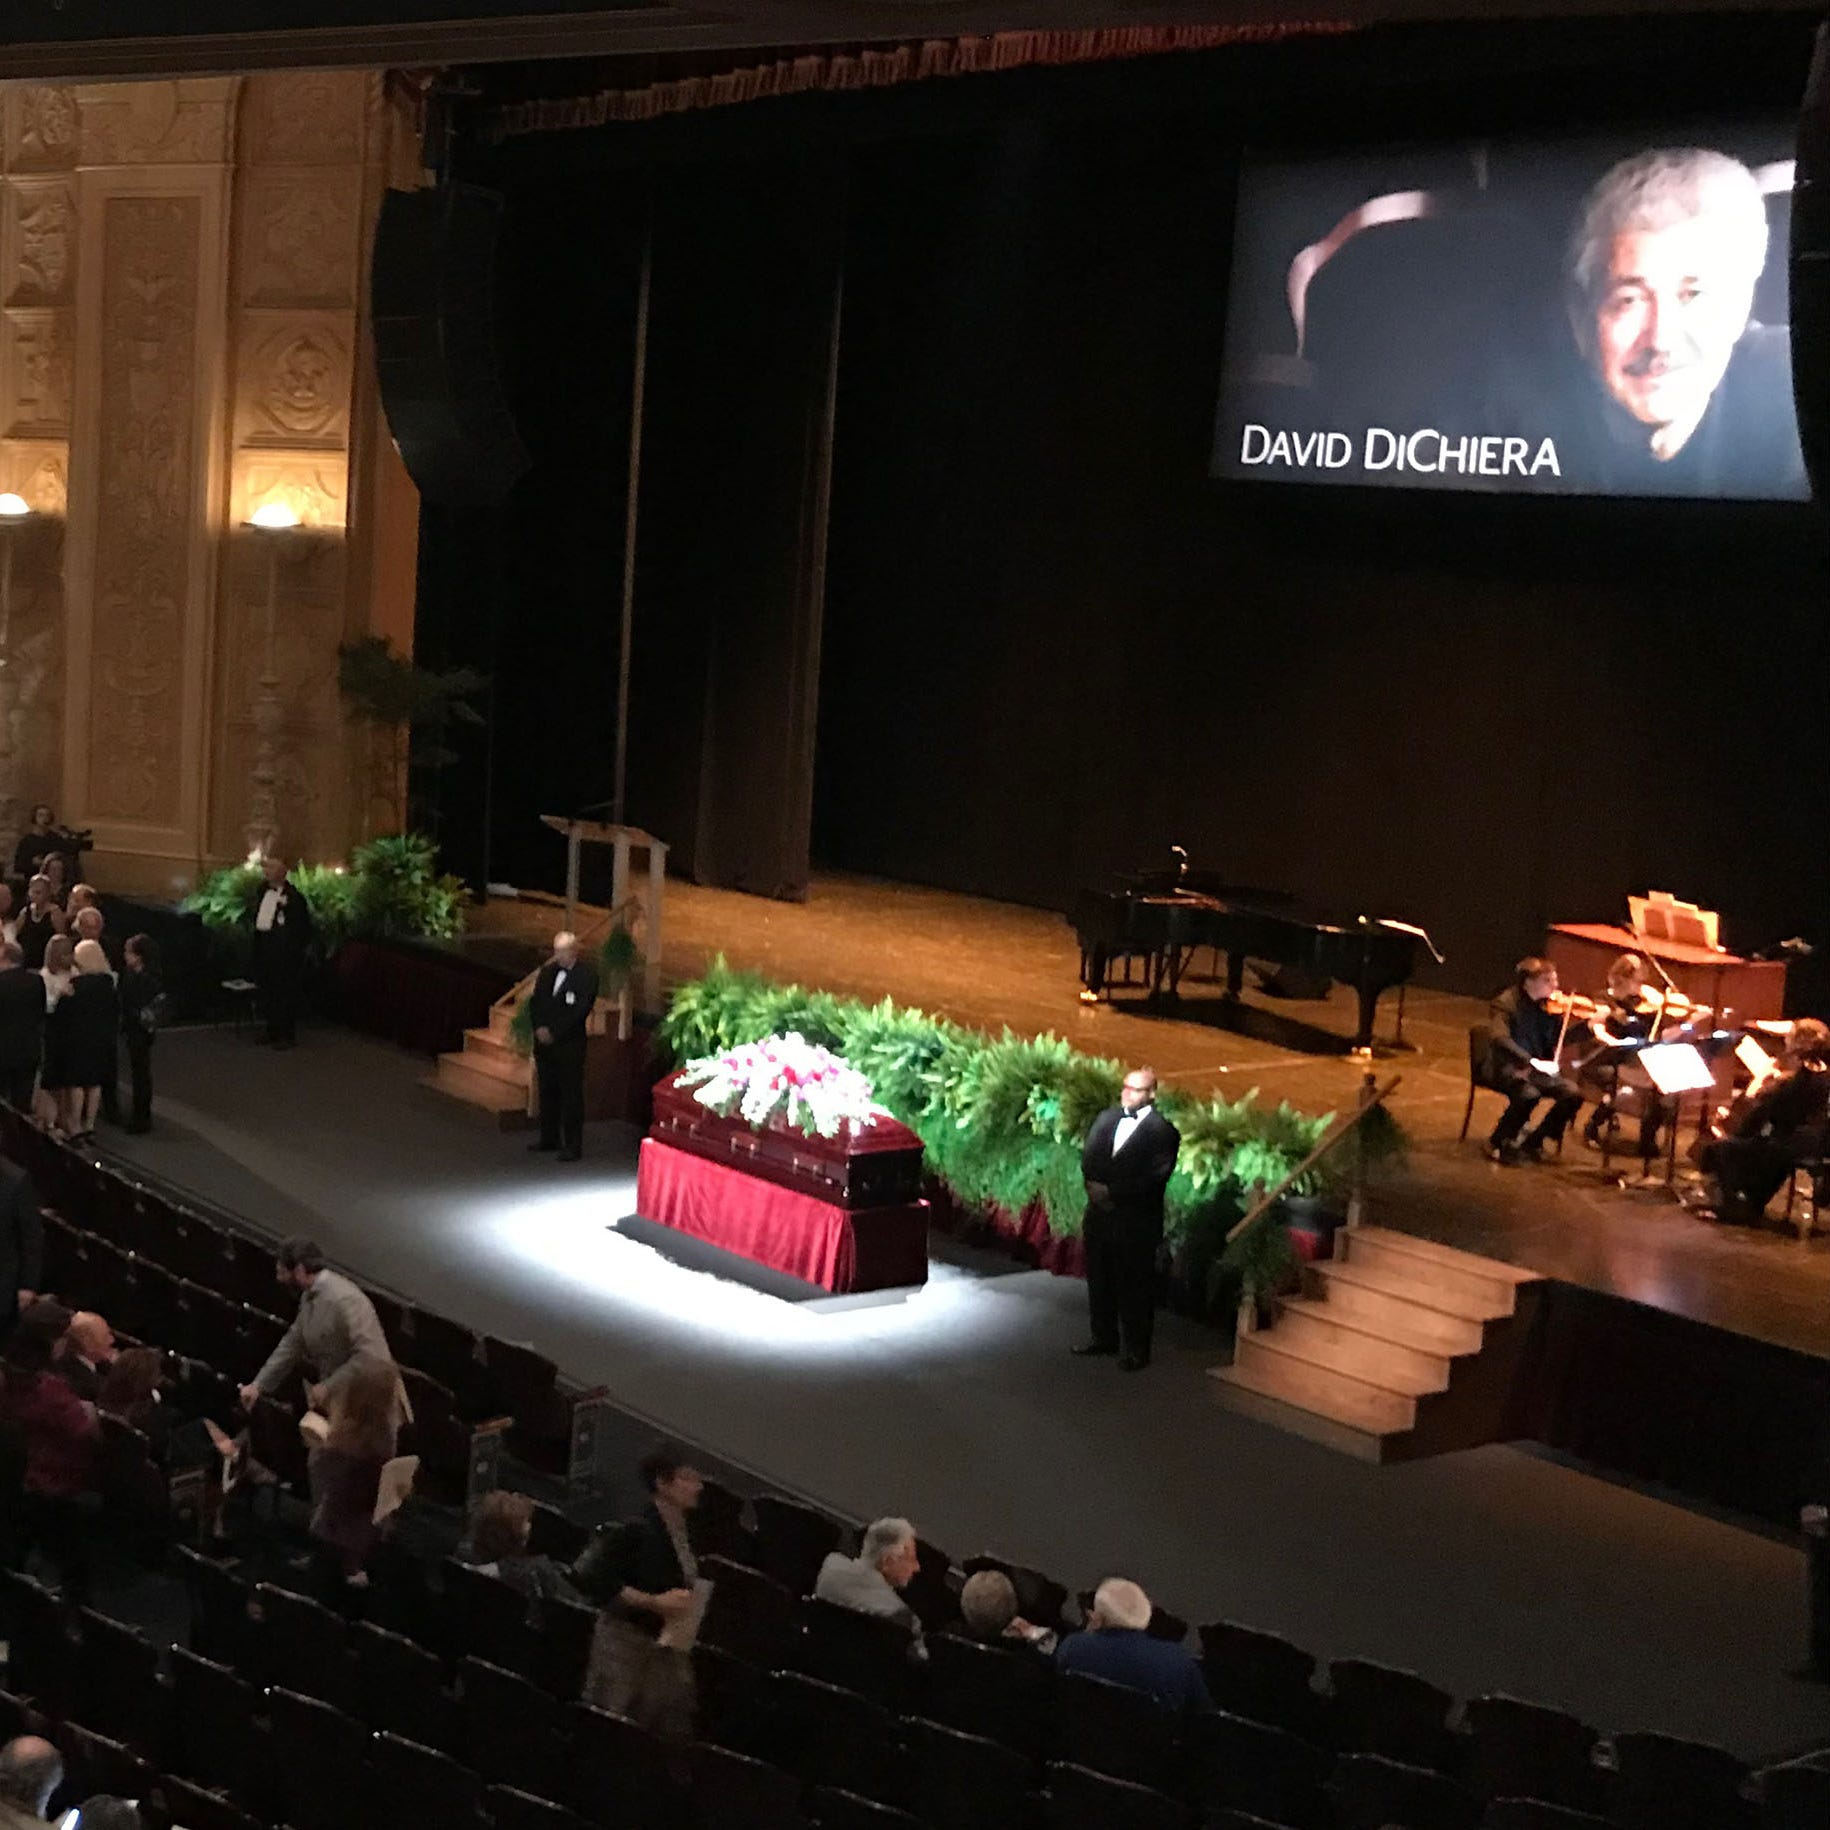 A large crowd gathered at the Detroit Opera House on Friday, Sept. 21, 2018 to honor the life of David DiChiera, who died after a battle with Stage 4 pancreatic cancer on Tuesday, Sept. 18.